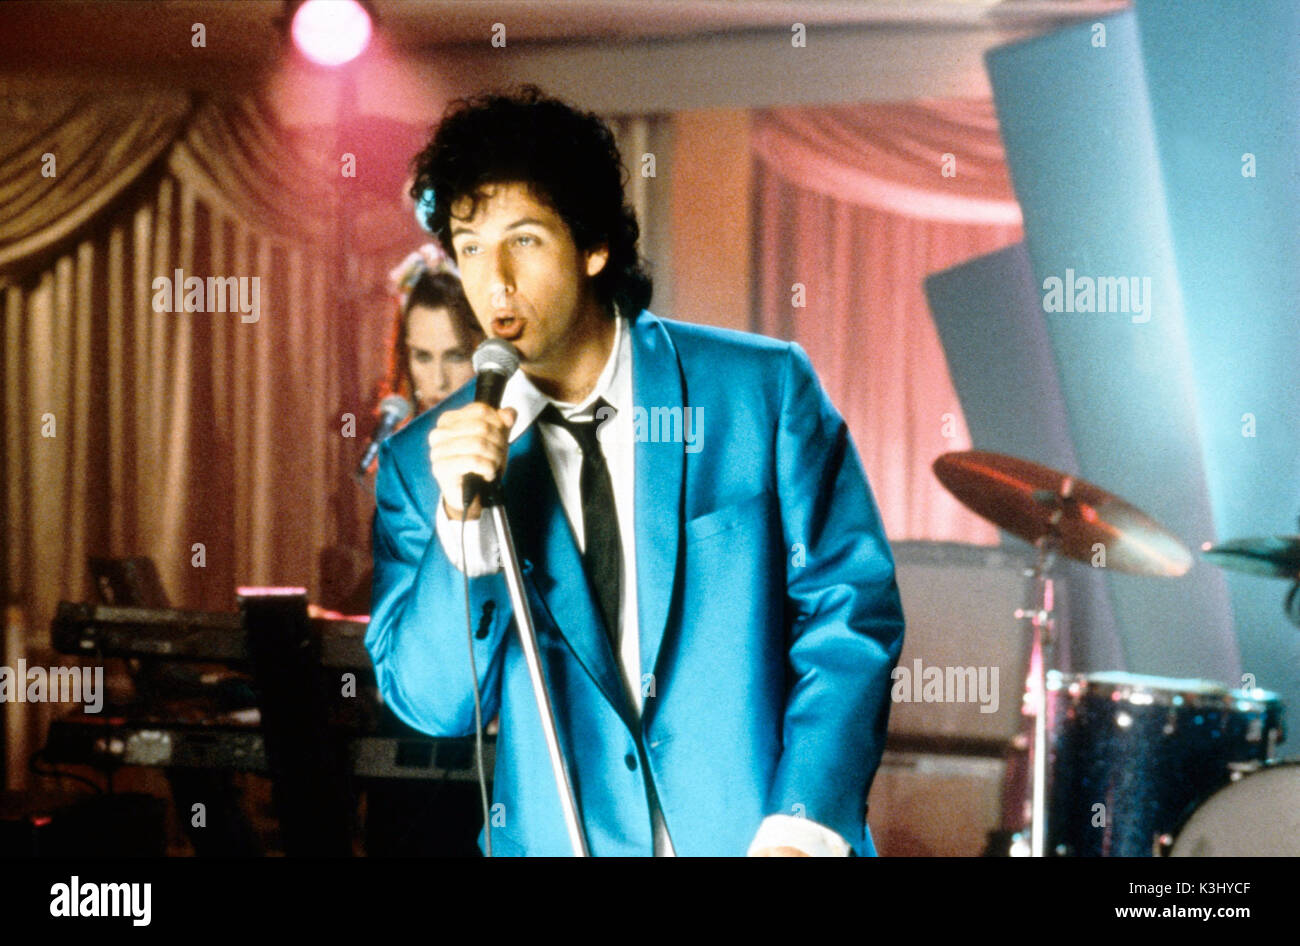 THE WEDDING SINGER ADAM SANDLER Date 1998